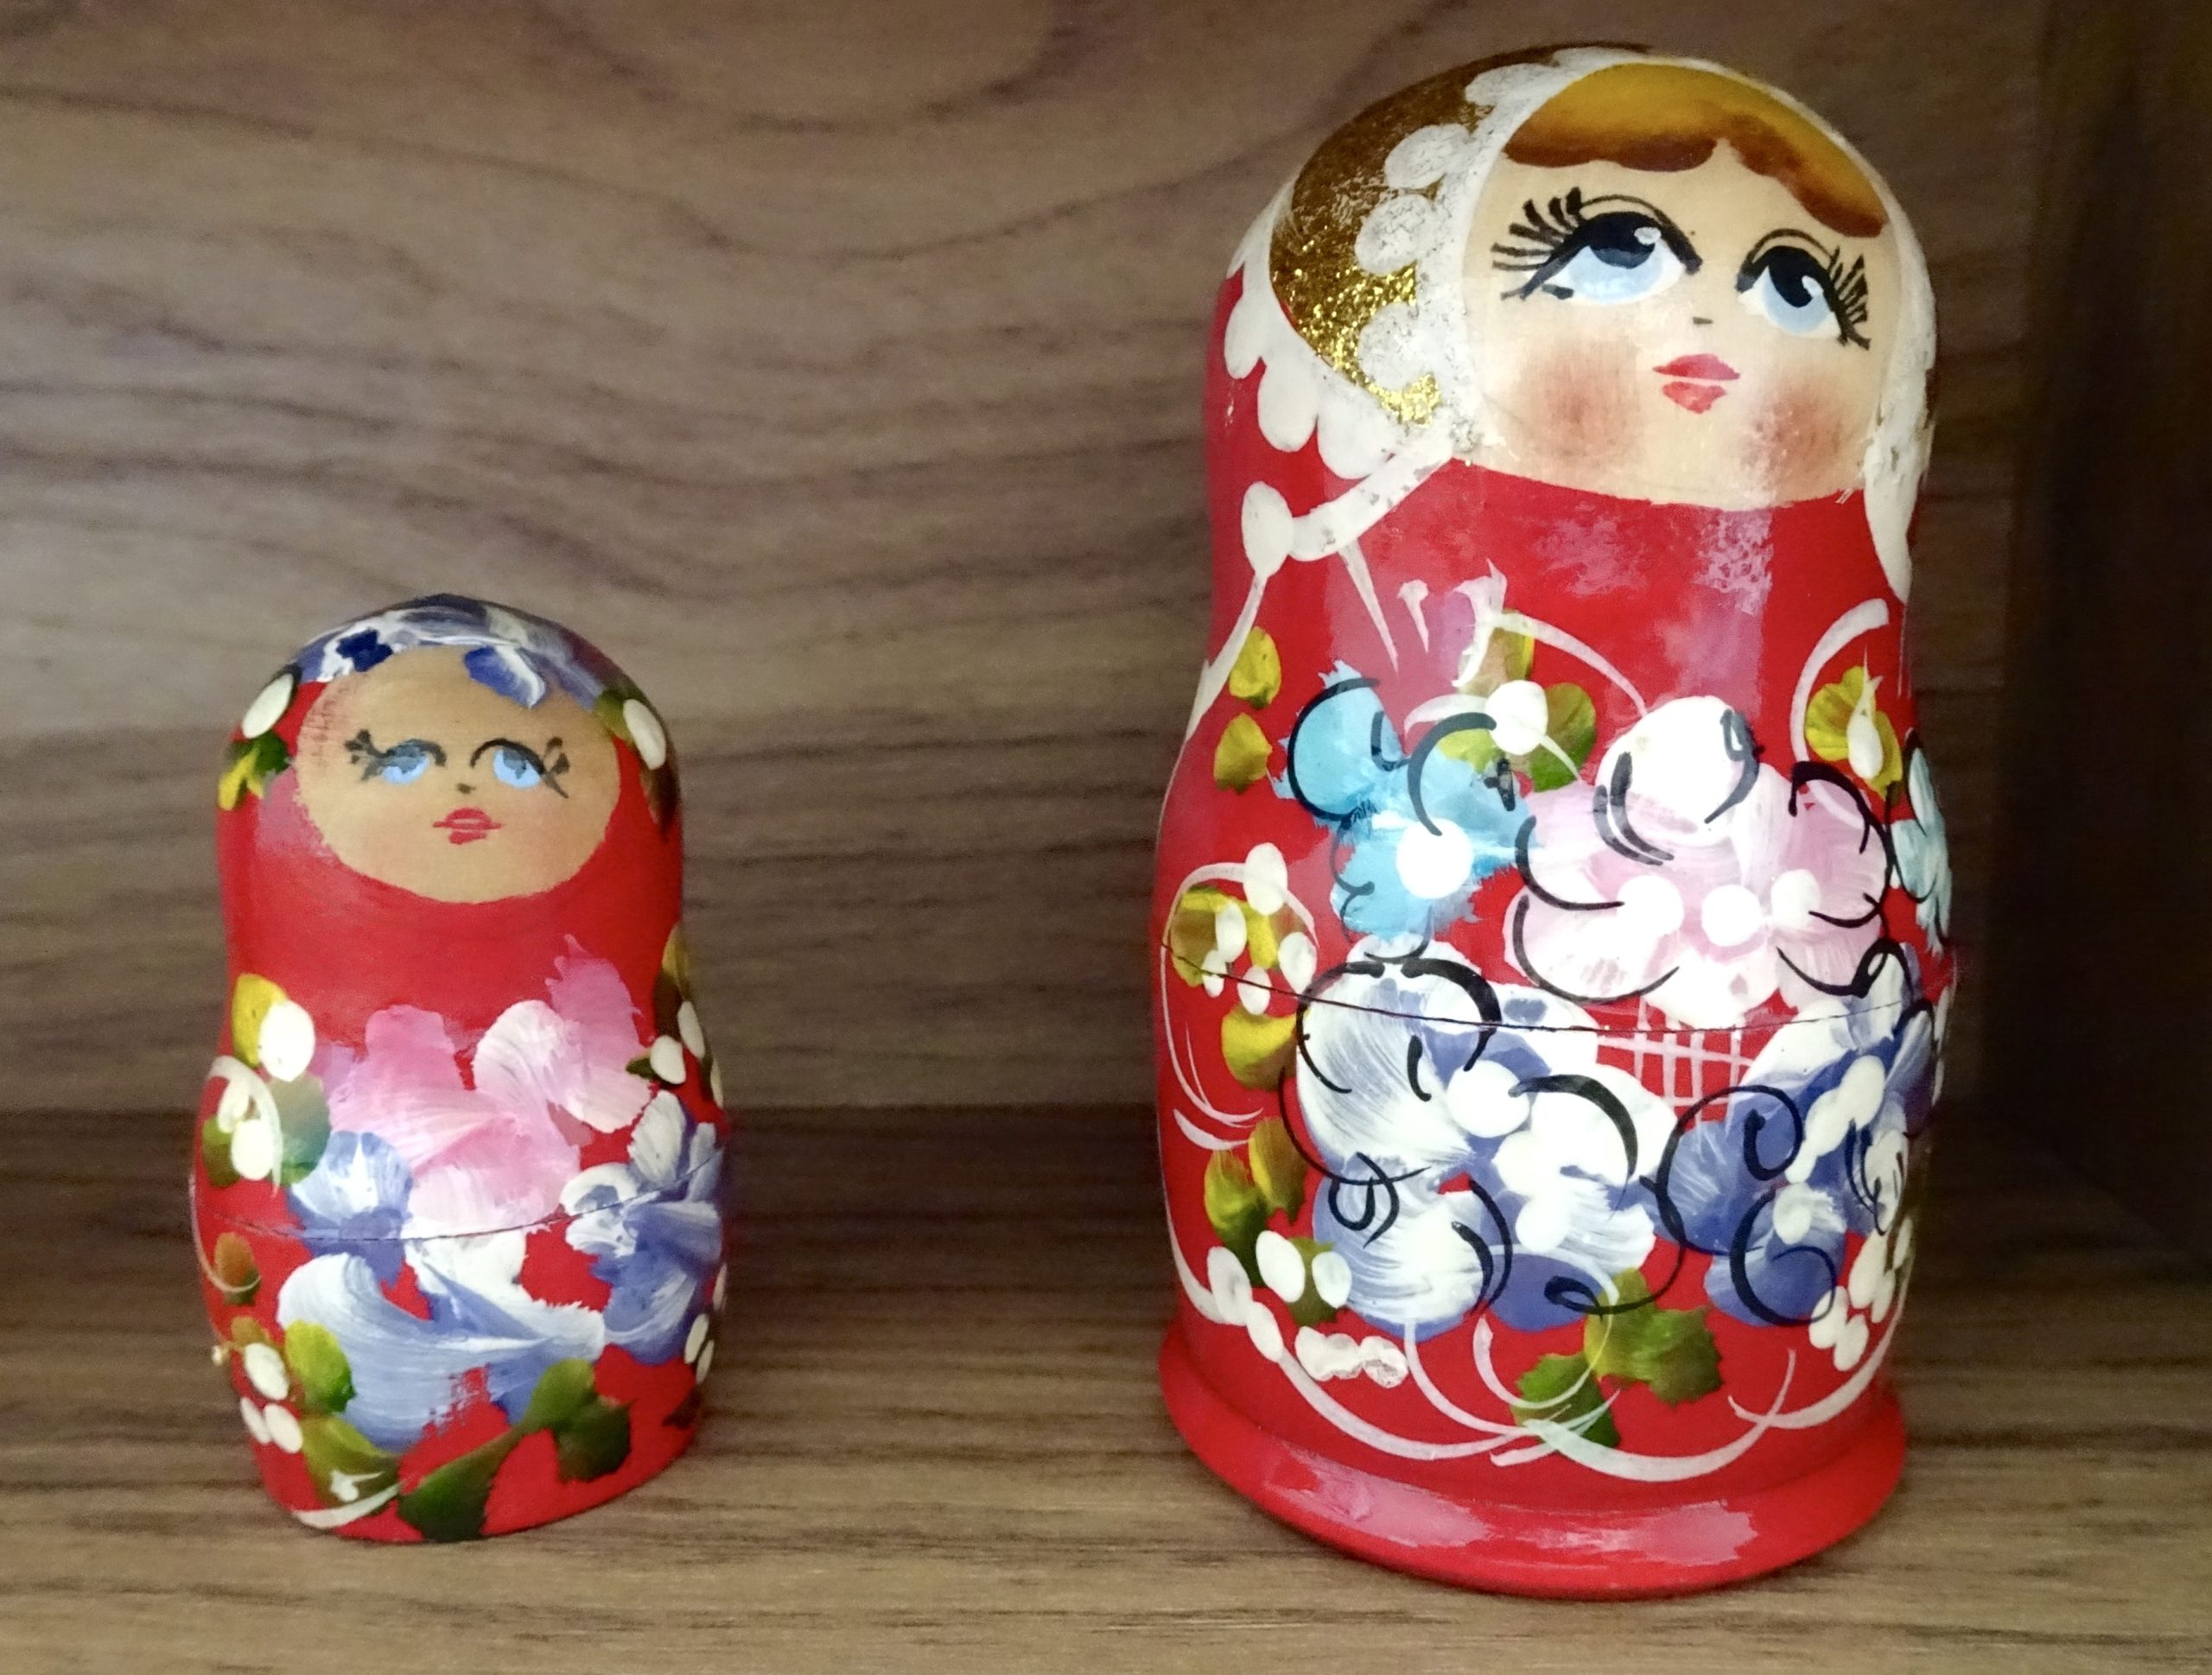 Decorative touches to the desk in Sarah's home office. No space is complete without her Russian dolls!